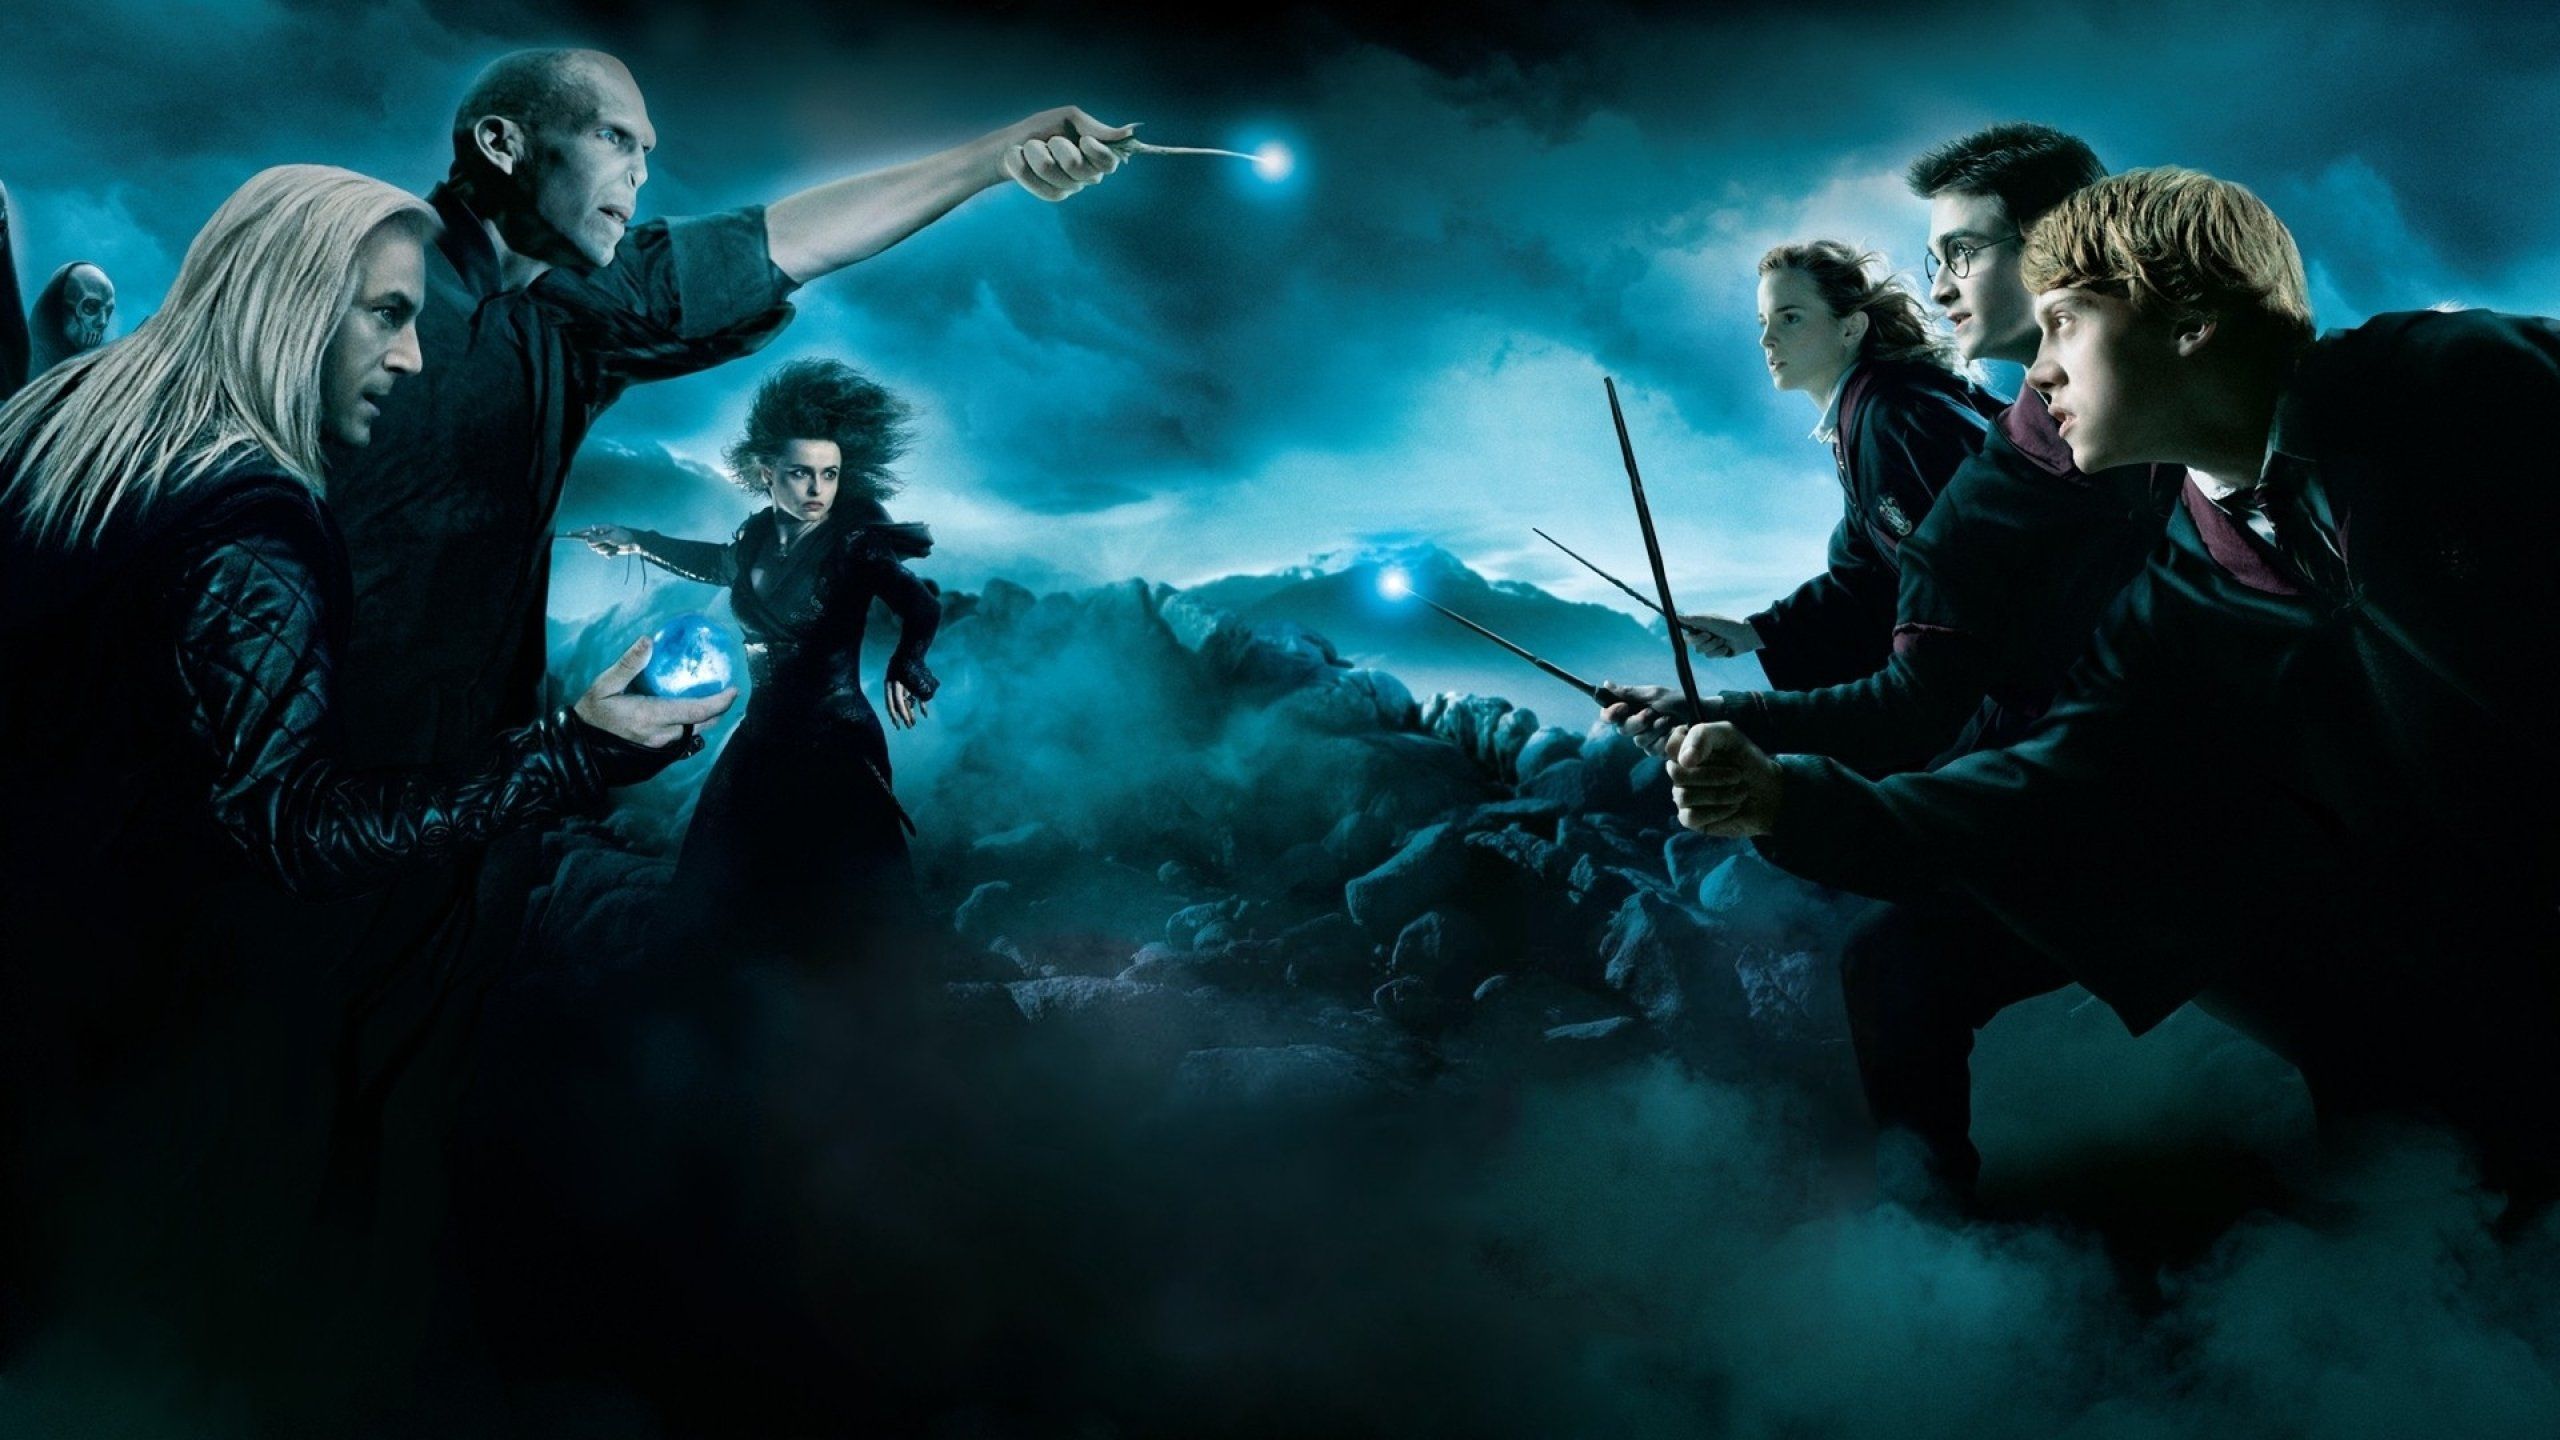 2560x1440 Harry Potter Free Wallpaper Wallpapers – 4kwallpaper.org